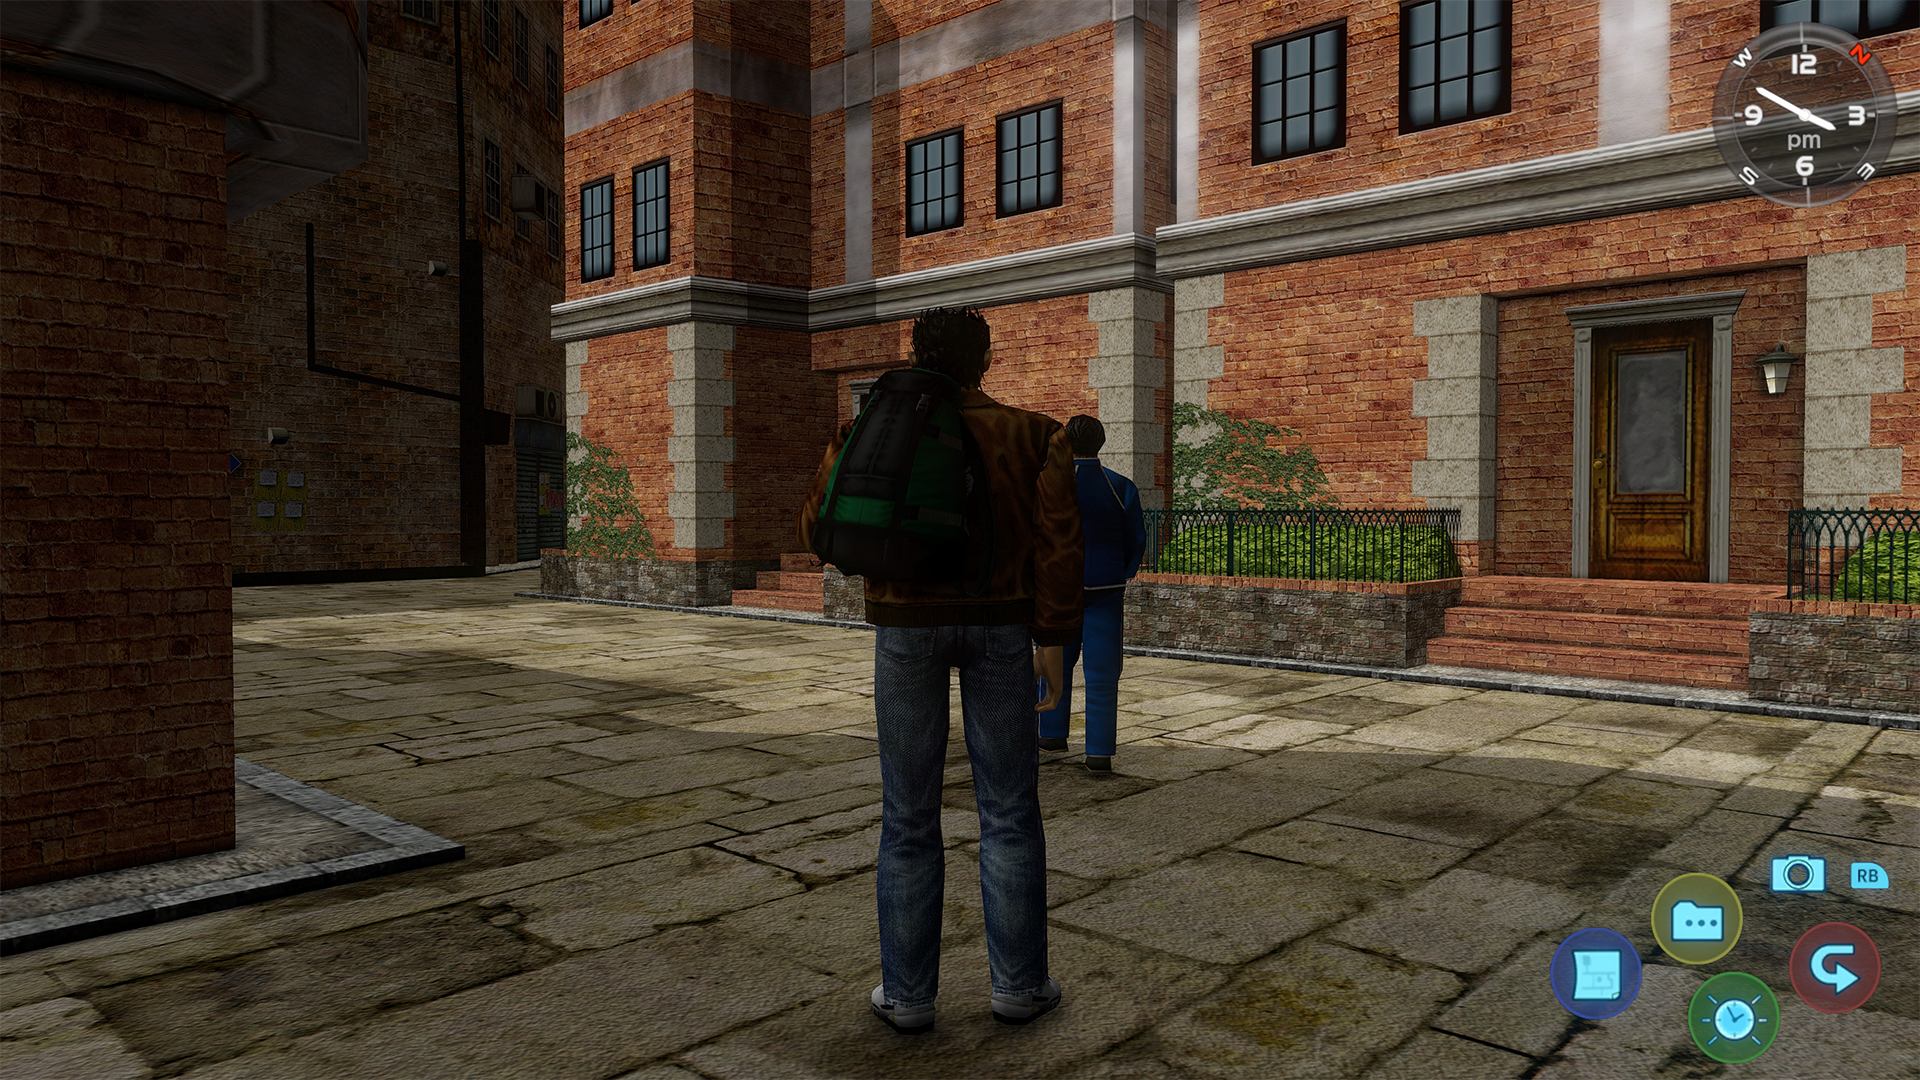 Shenmue I & II HD PC fan made HD texture pack now works with Shenmue II »  SEGAbits - #1 Source for SEGA News